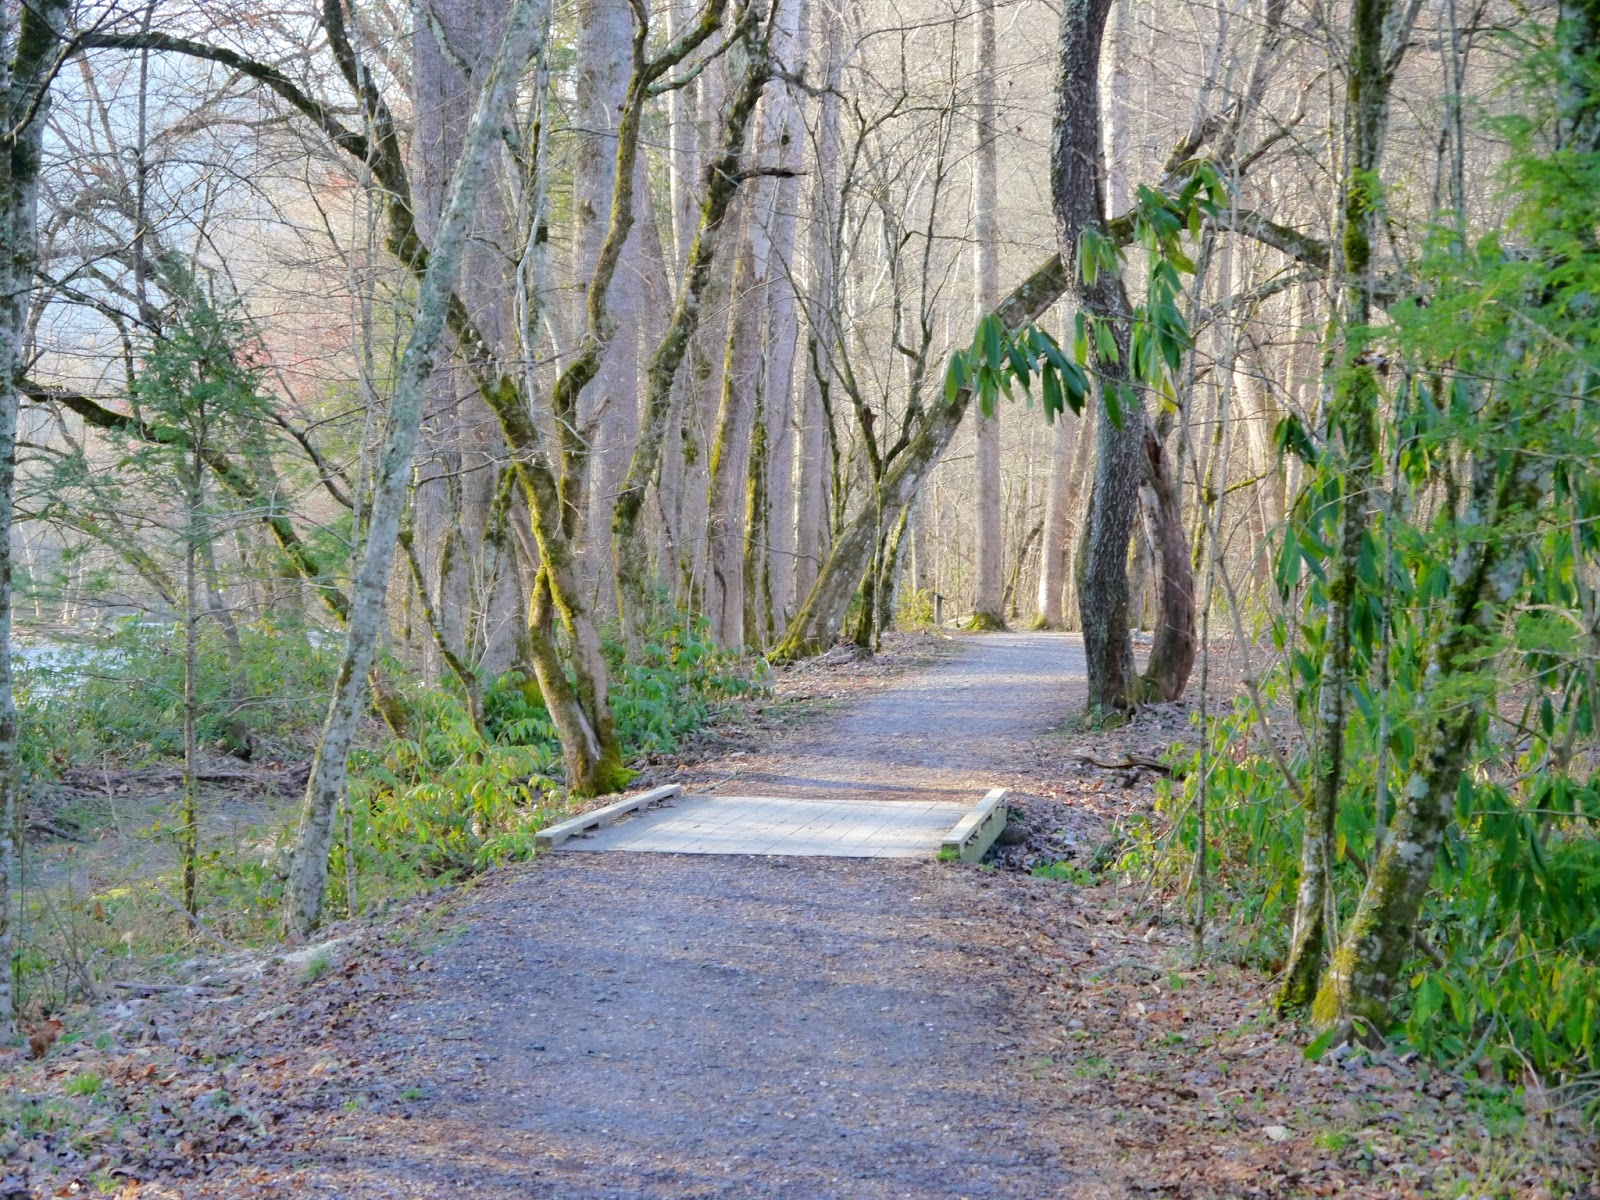 Cherokee For Less >> American Travel Journal: Oconaluftee River Trail - Great Smoky Mountains National Park